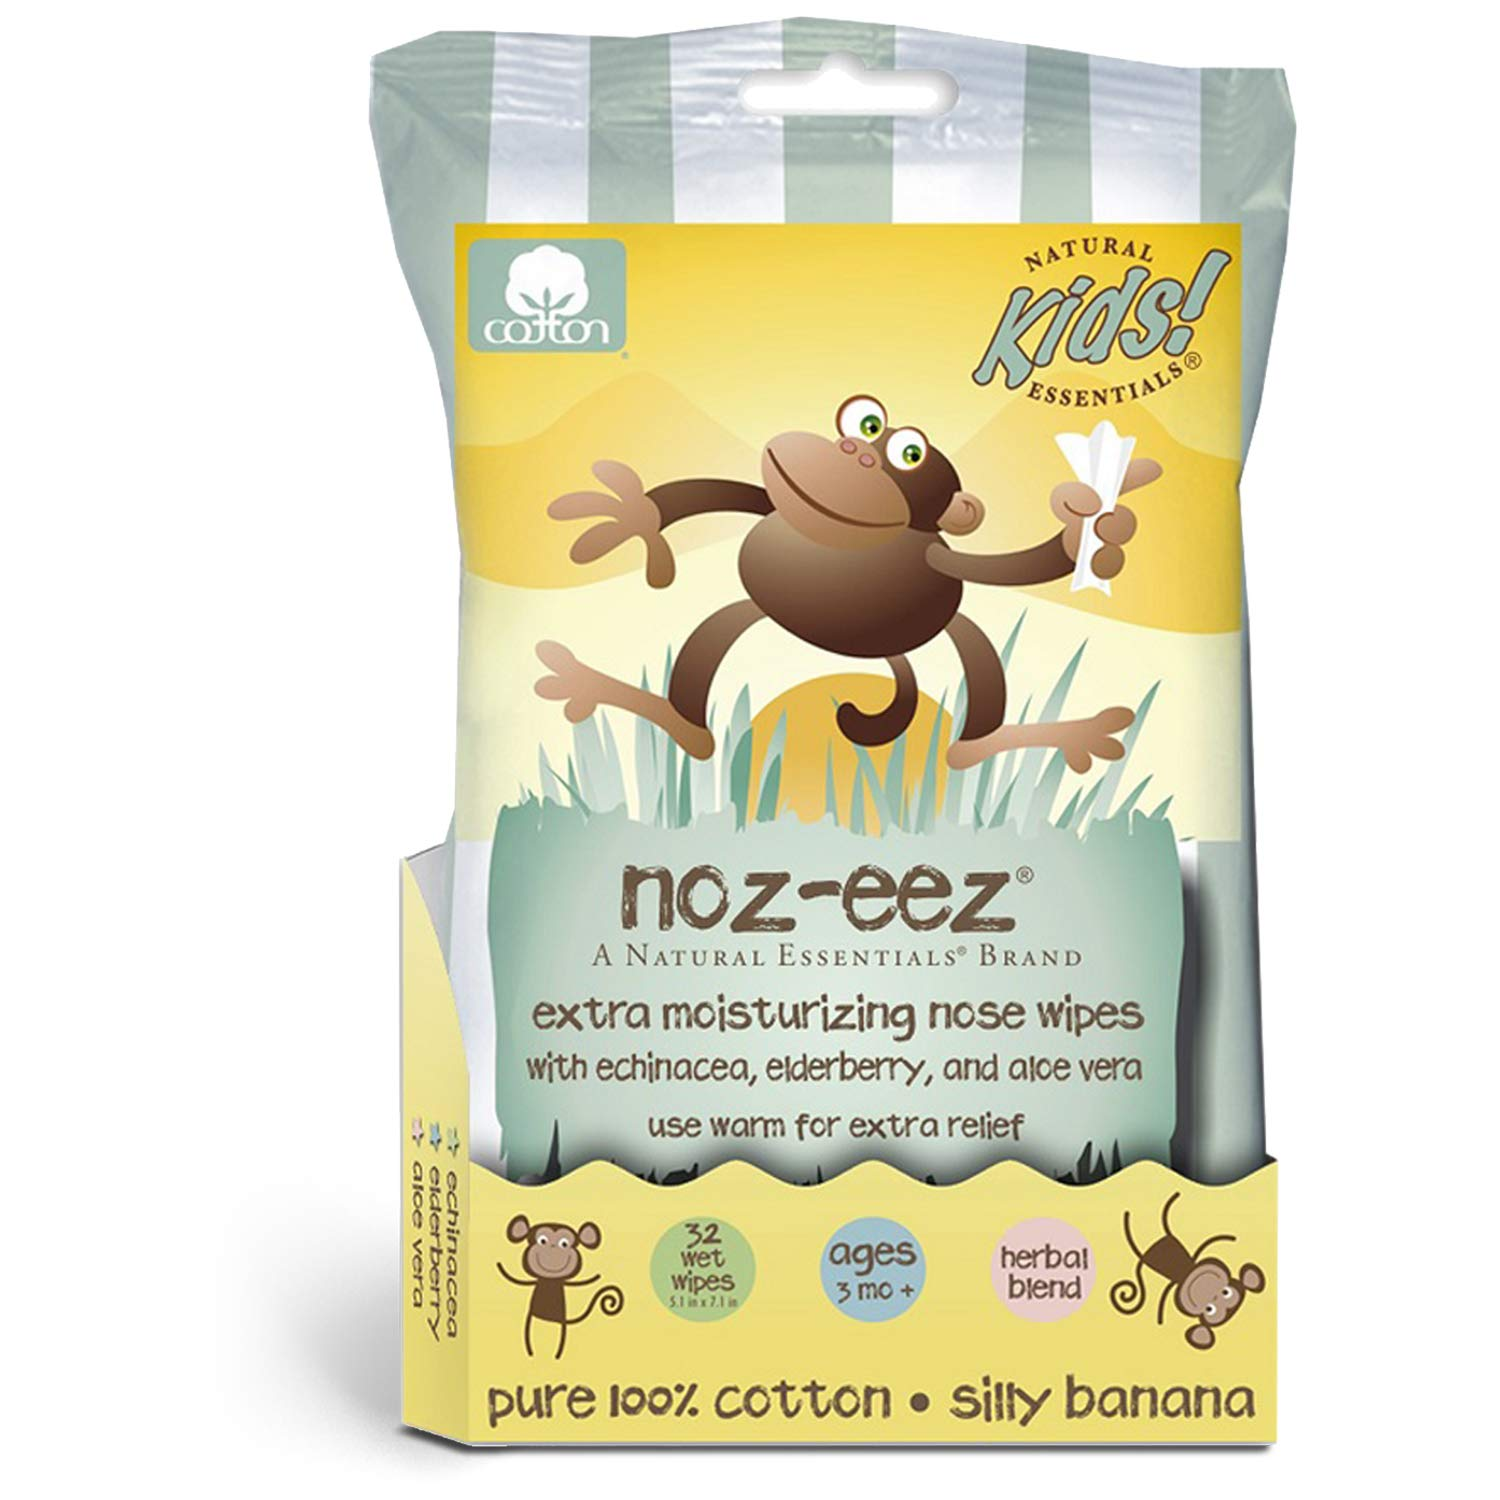 Noz-EEZ Moisturizing Nose Wipes for Kids w/Echinacea, Elderberry & Aloe, Banana Scent by Natural Essentials, 32-Count (1)